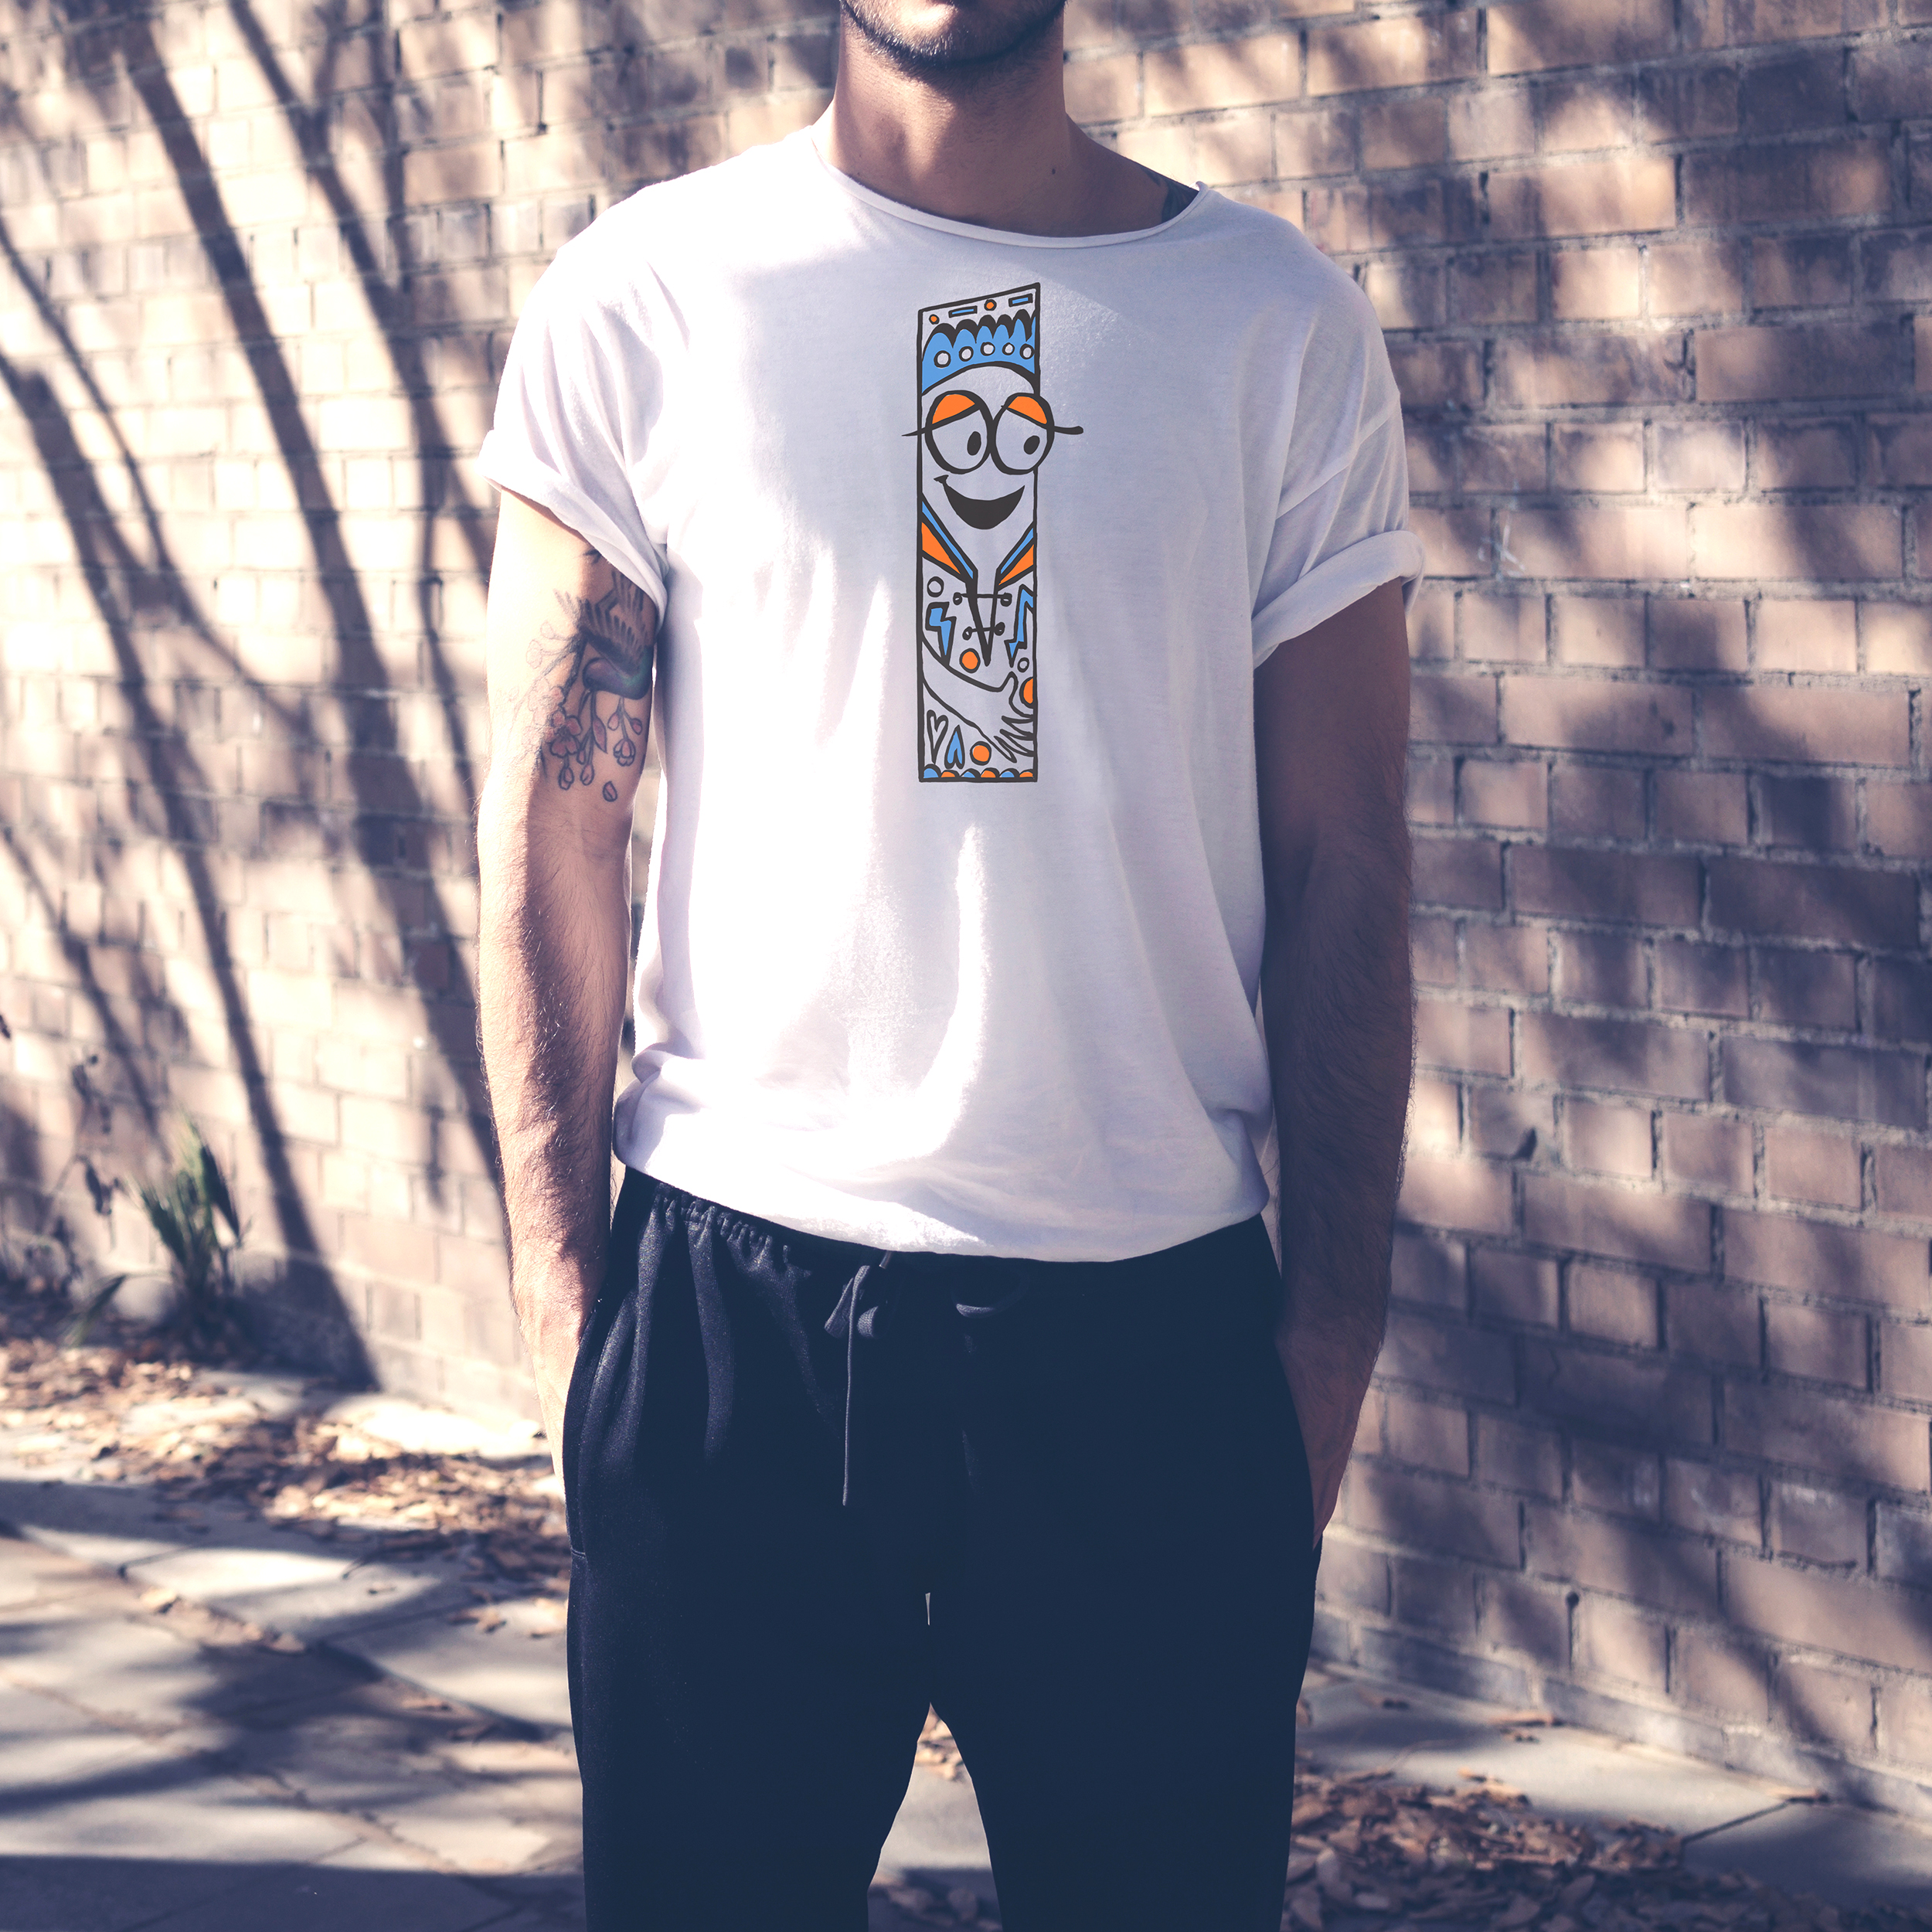 Typo collection - t-shirts & bags 17